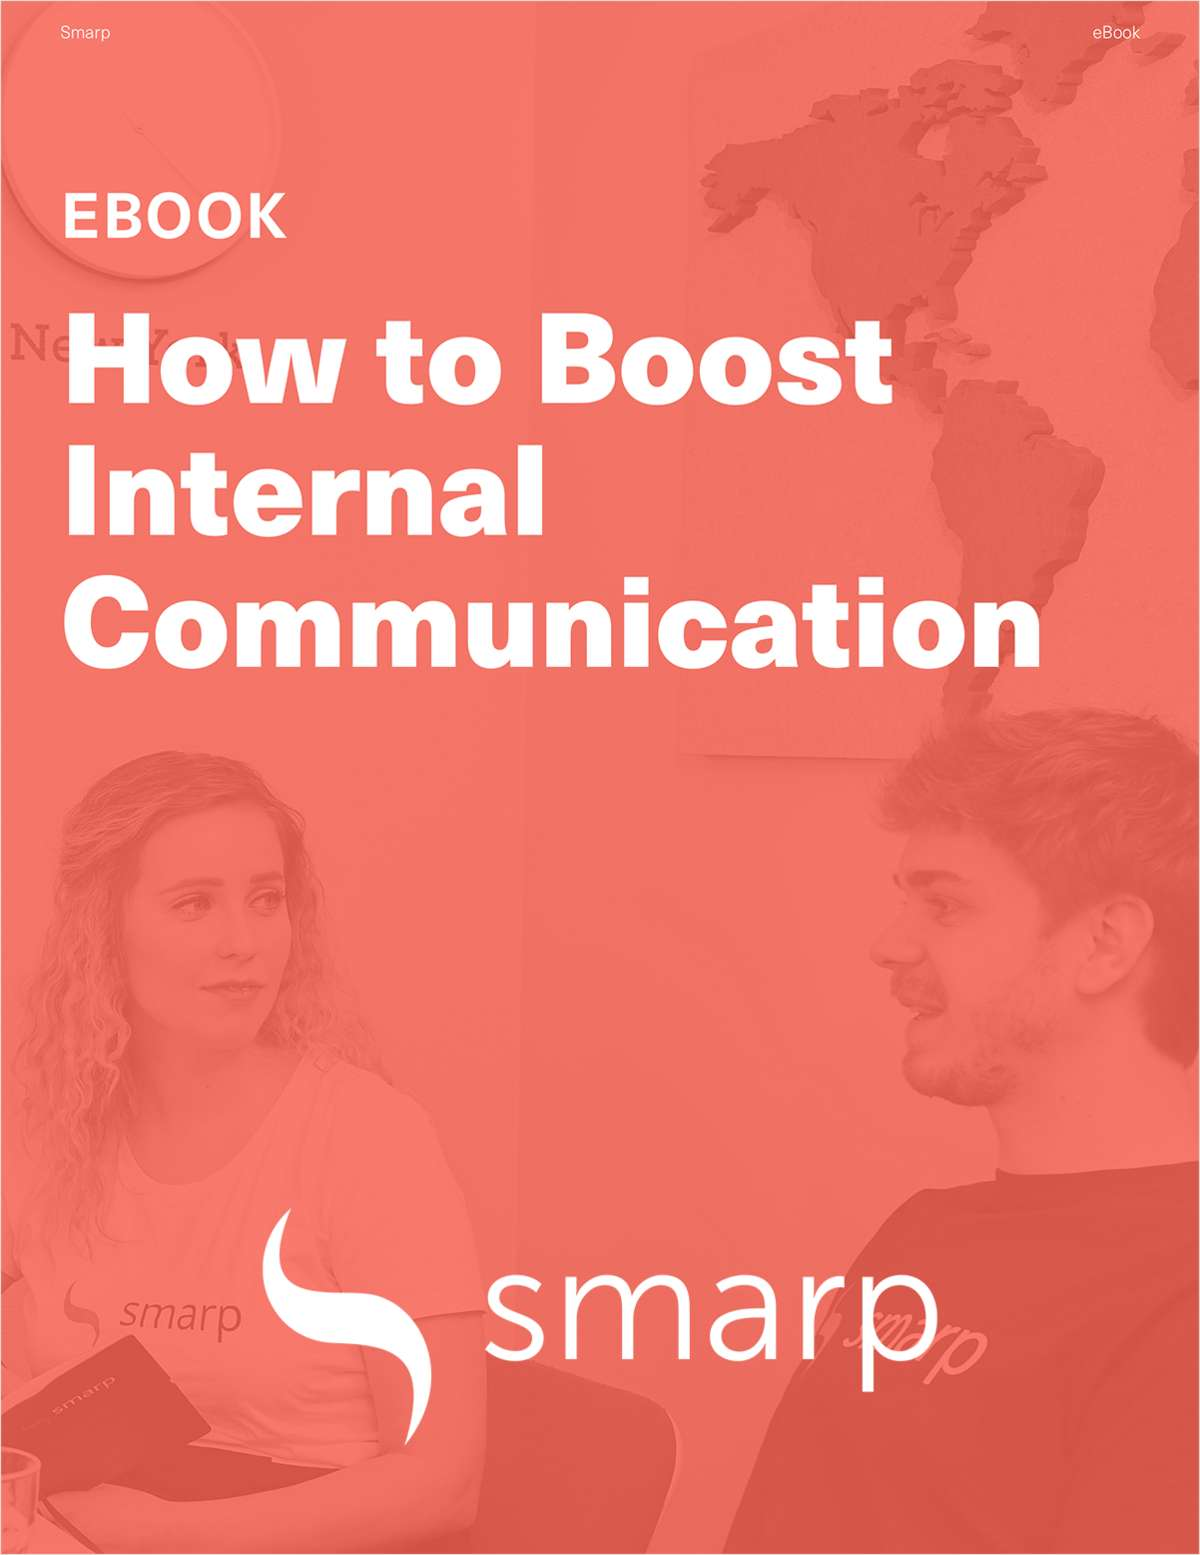 eBook: How to Boost Internal Communication